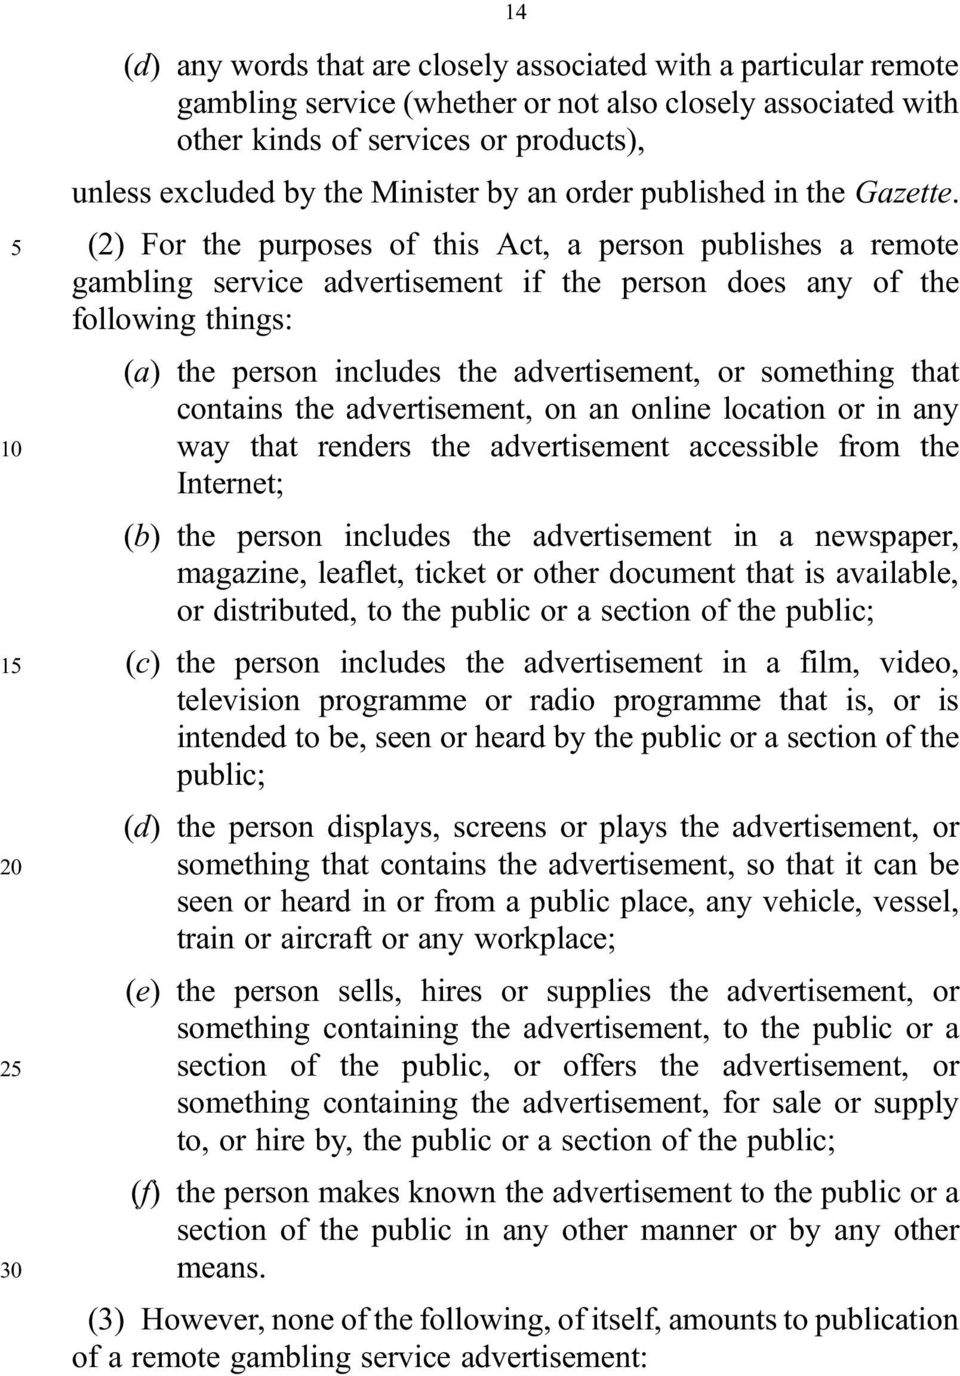 5 (2) For the purposes of this Act, a person publishes a remote gambling service advertisement if the person does any of the following things: (a) the person includes the advertisement, or something